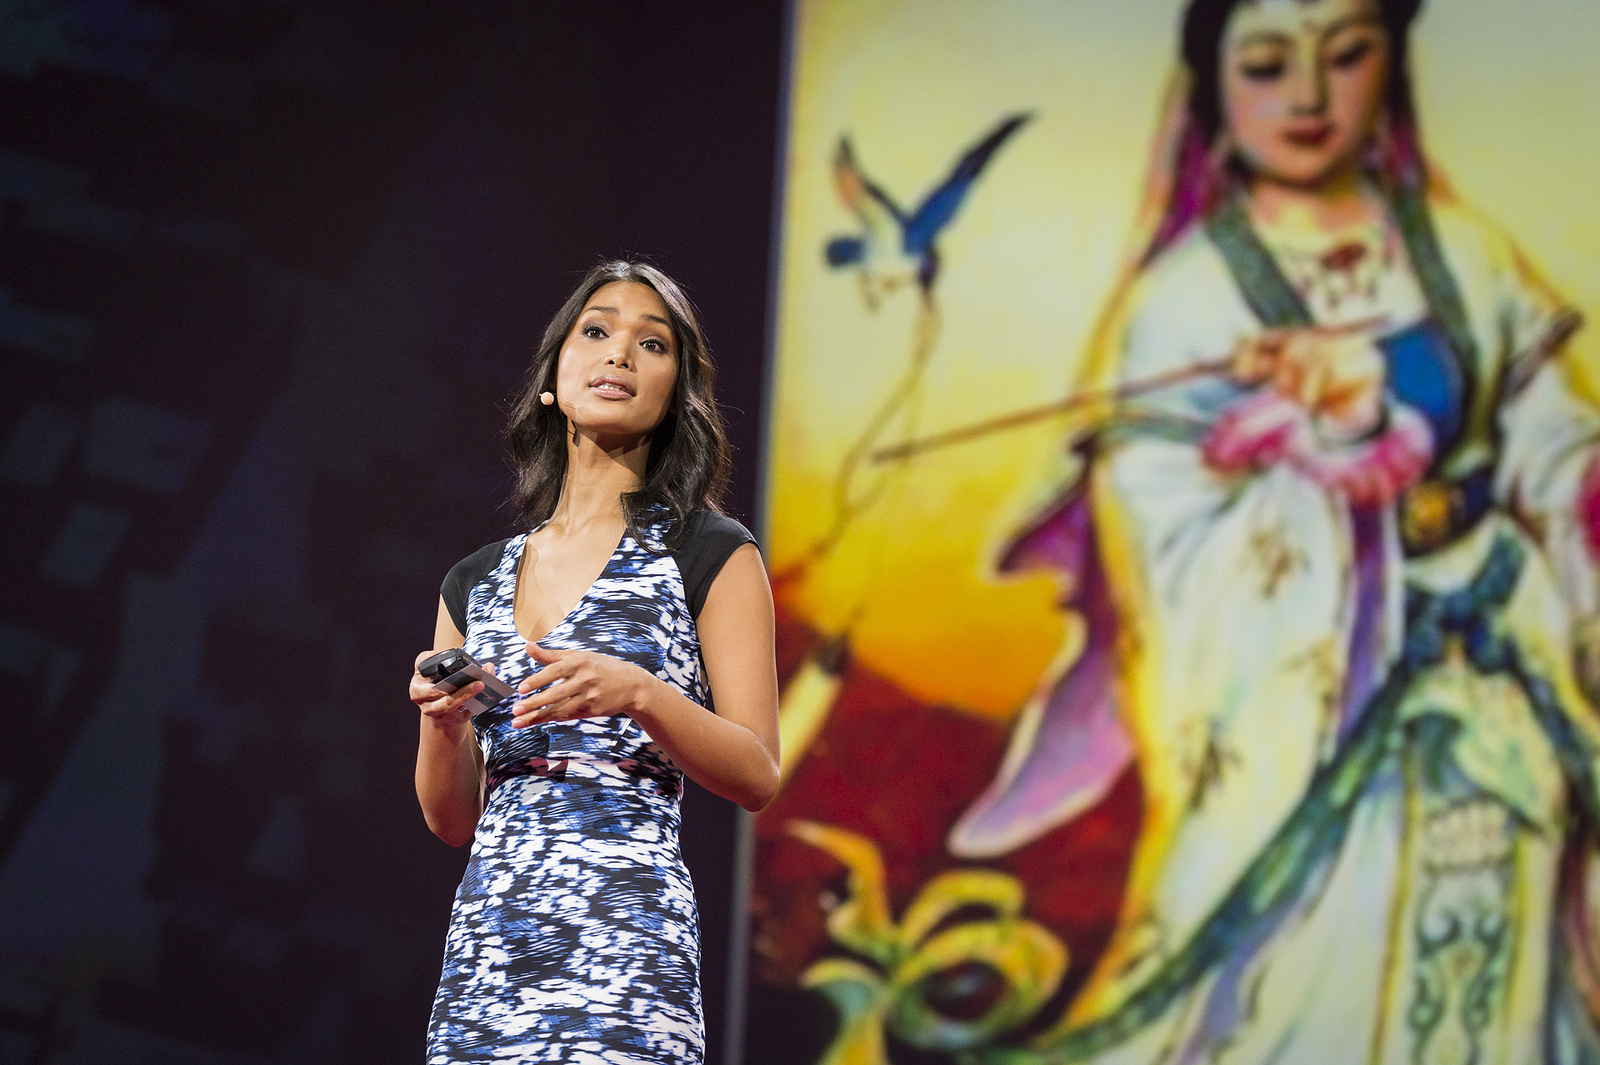 Geena Rocero takes the stage at TED2014. Photo: James Duncan Davidson